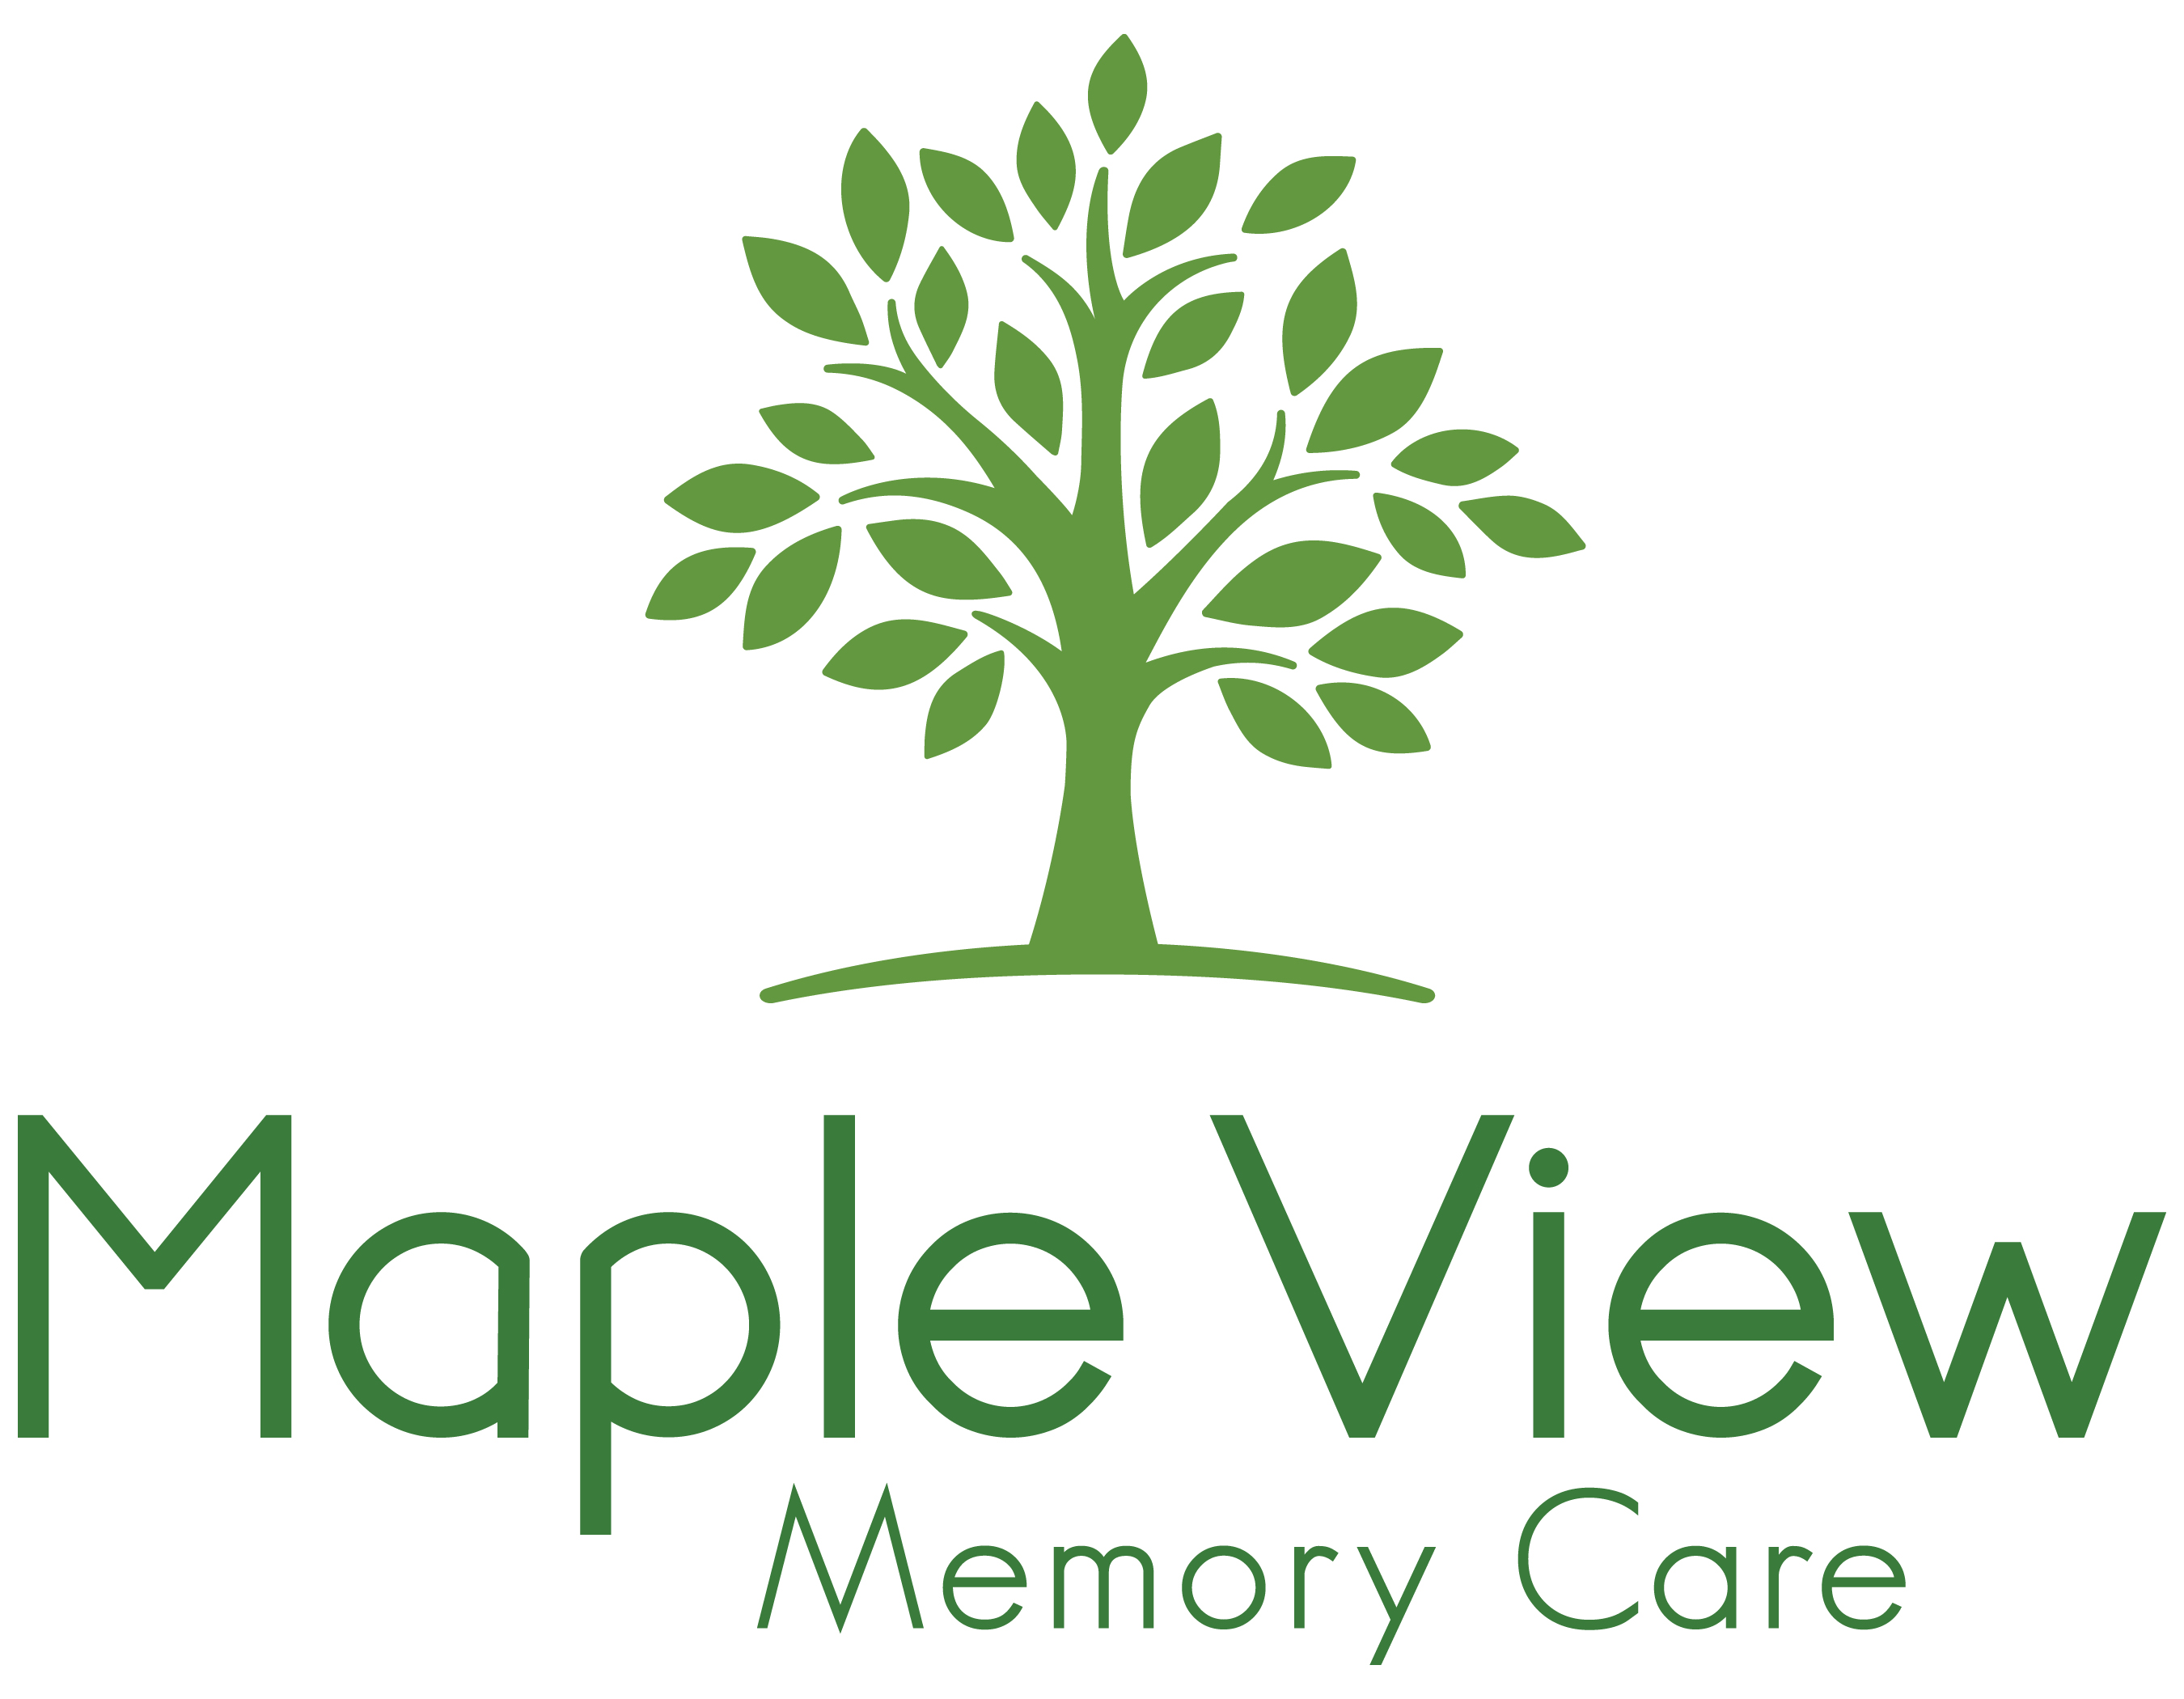 Maple View Memory Care logo